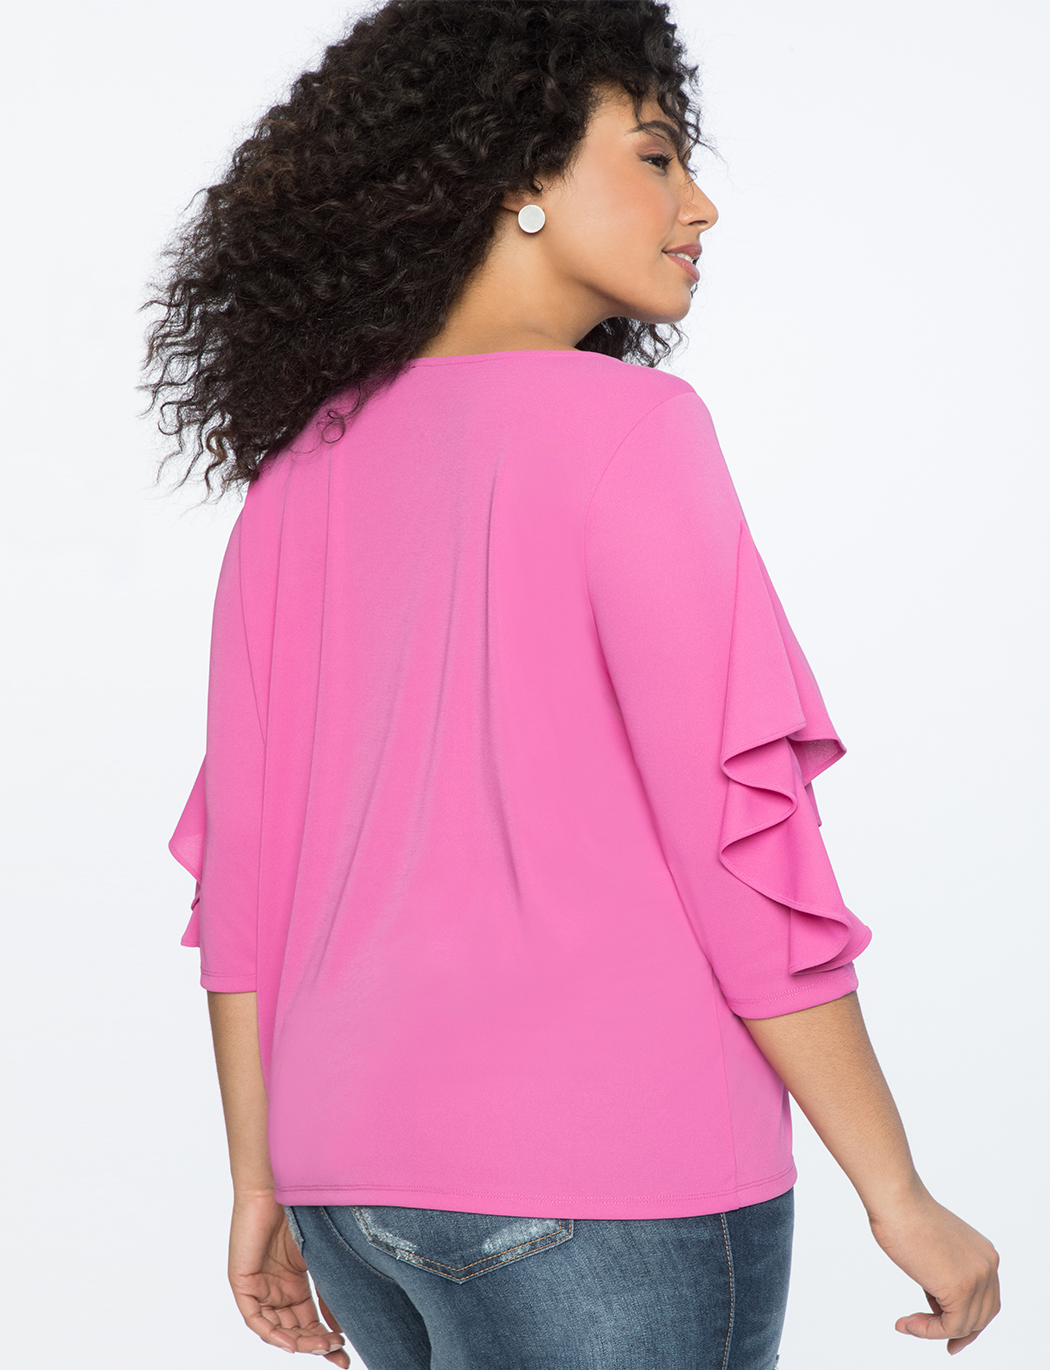 Ruffle 3/4 Sleeve Top